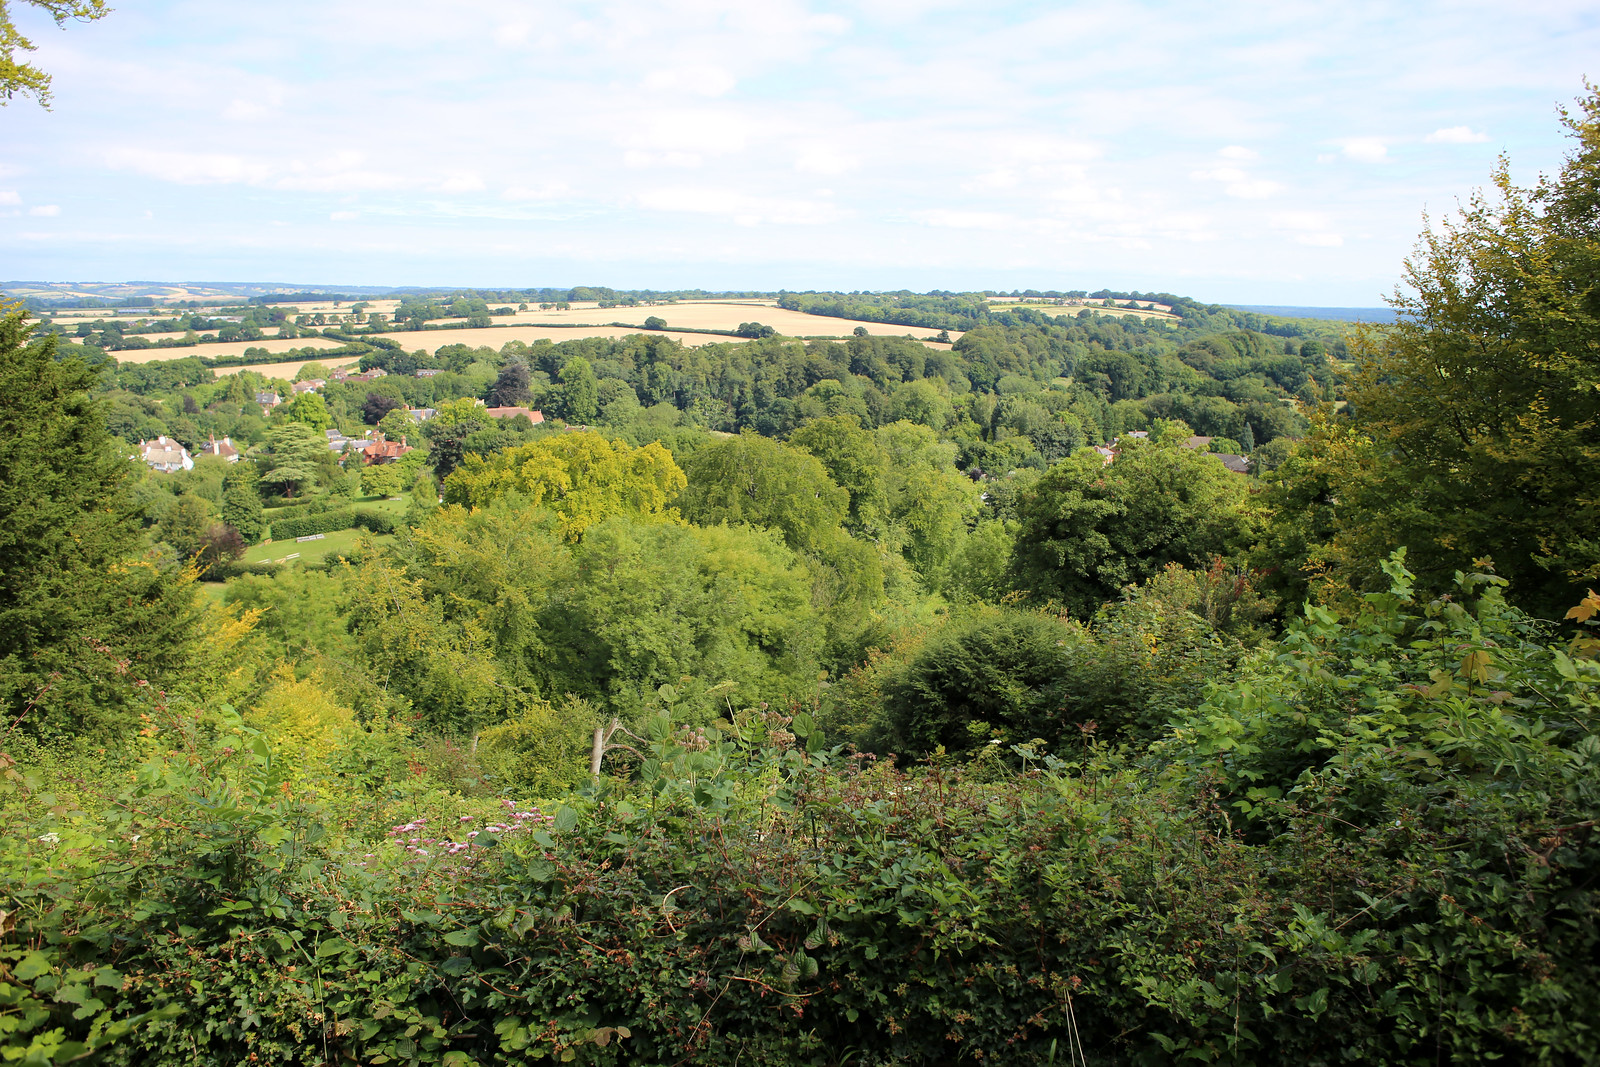 View from Selborne Common